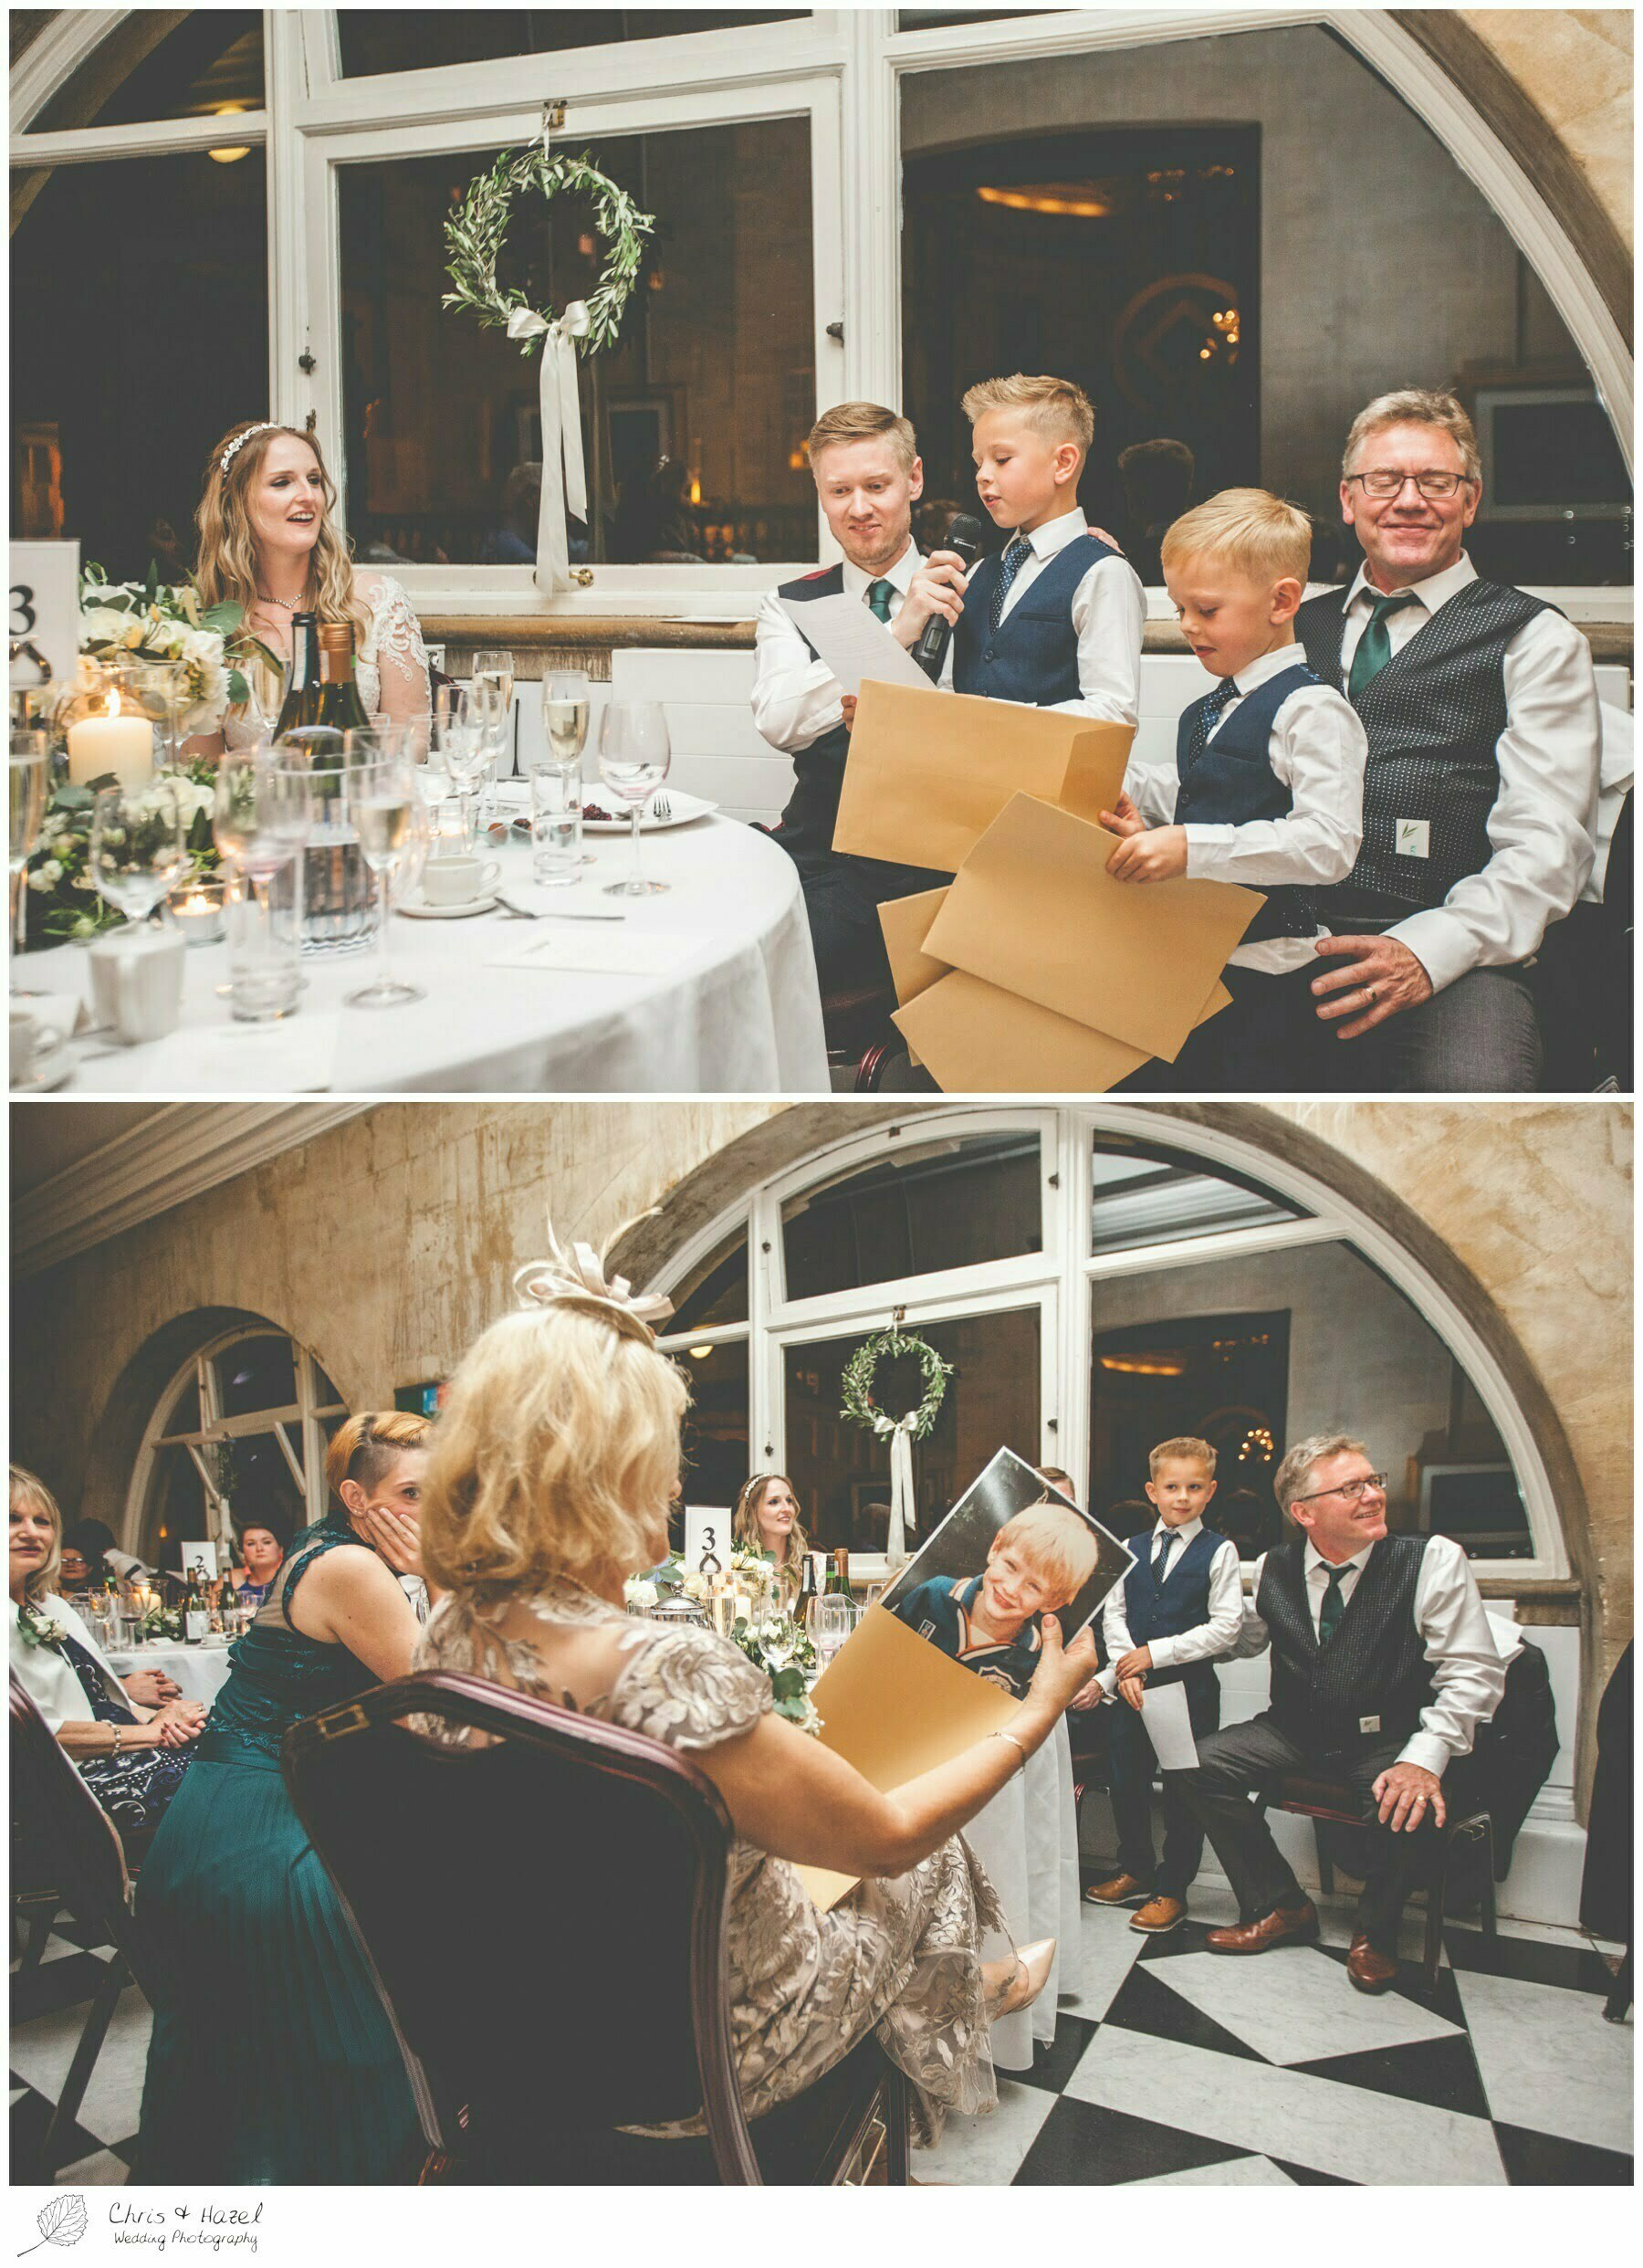 Kids wedding speech, Wedding speeches, wedding breakfast on the terrace at Roman Baths Pump Rooms, The Roman Baths Wedding Photography, Roman Baths Wedding Photographer, Wedding in Bath, Bath Wedding Day, documentary wedding photography, Chris and Hazel Wedding Photography Bath, Andy Frost Sian Upson